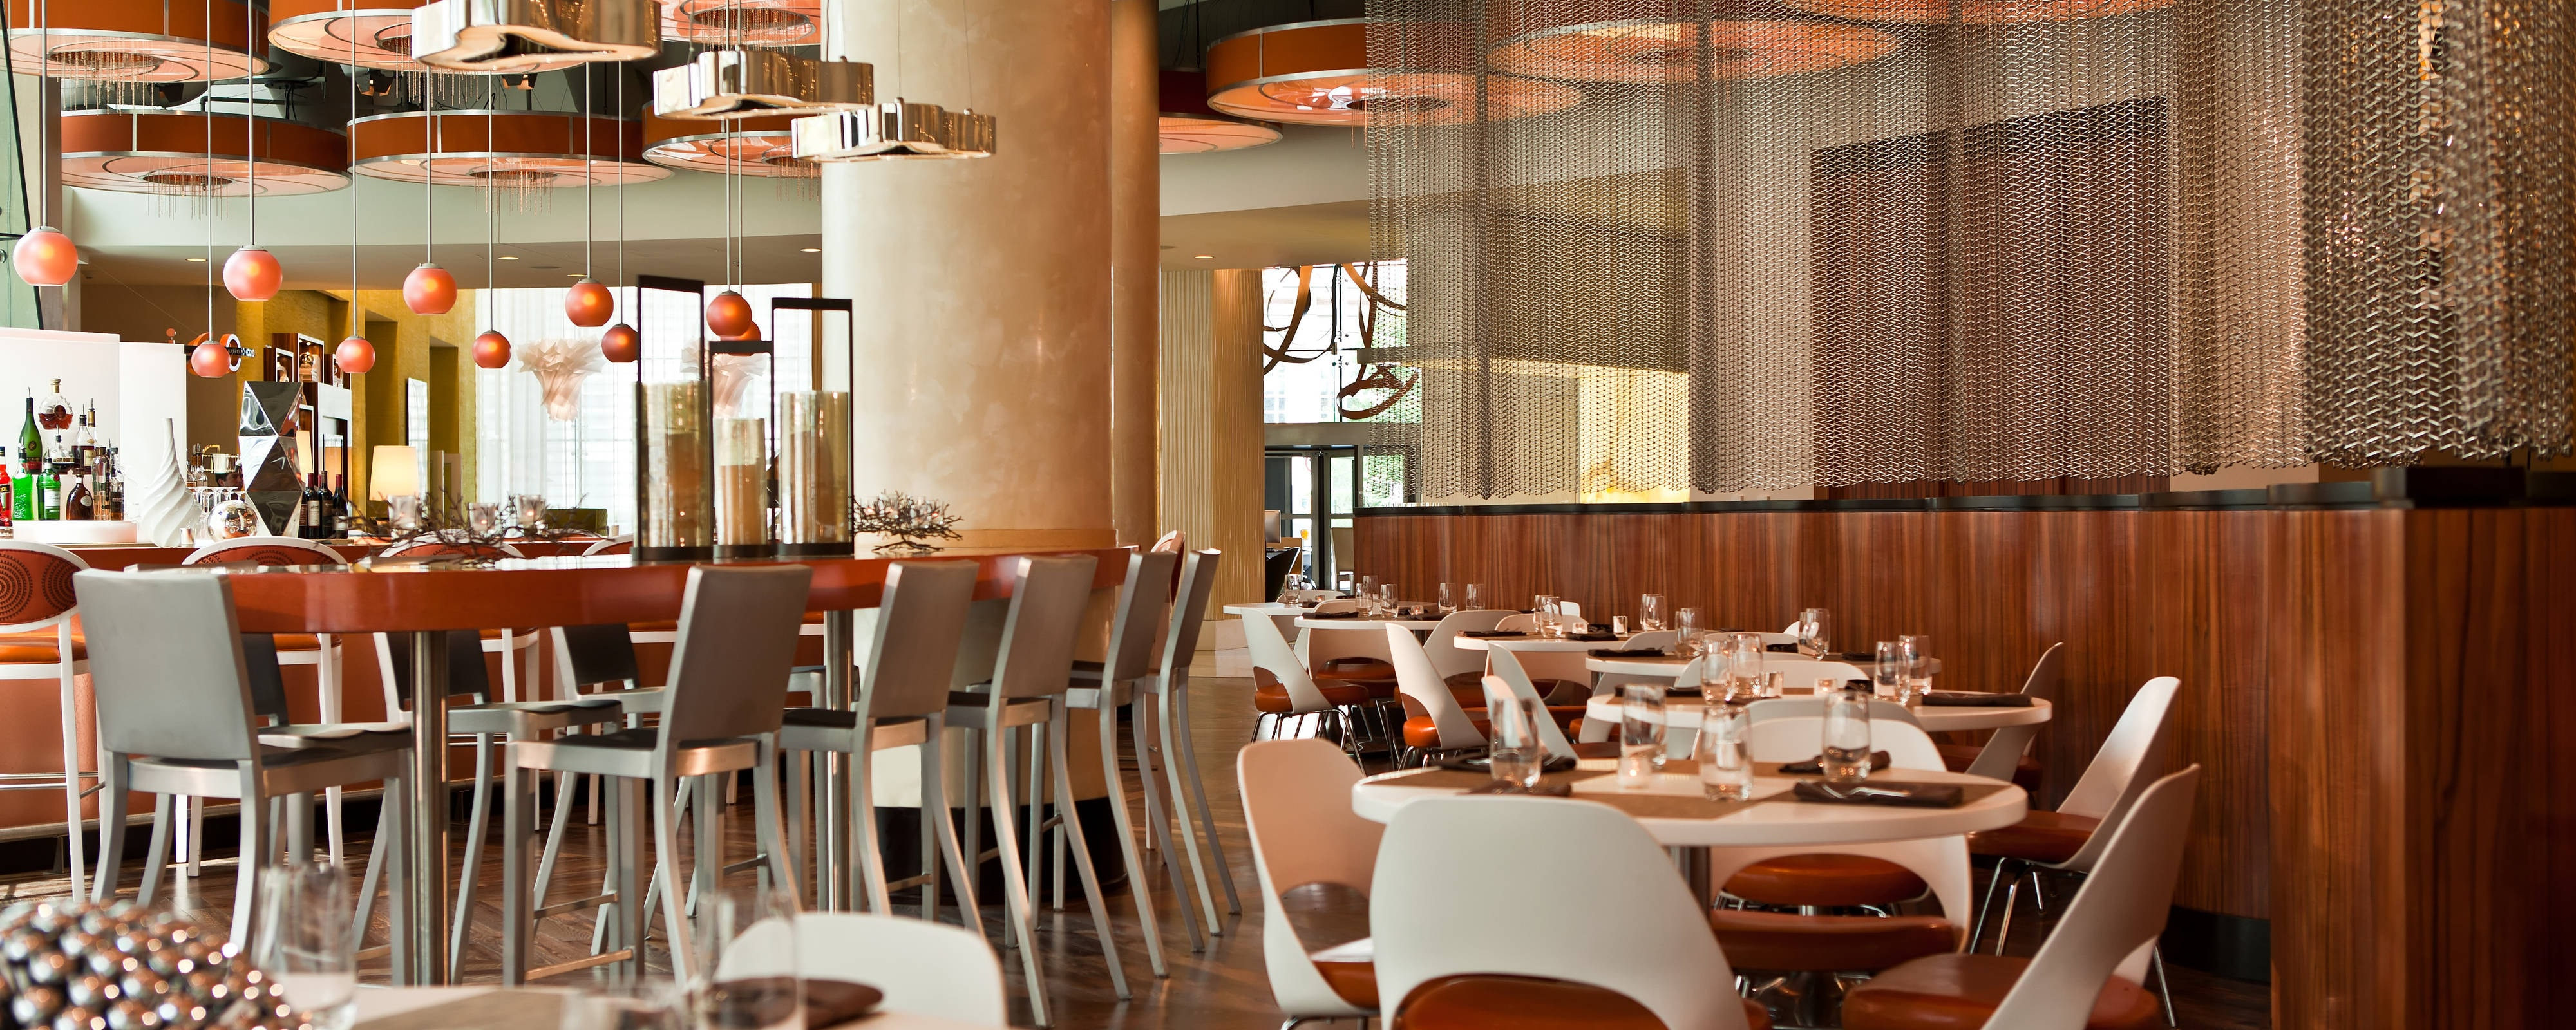 Crystal City Hotel Restaurant Arlington - Renaissance Arlington Capital View